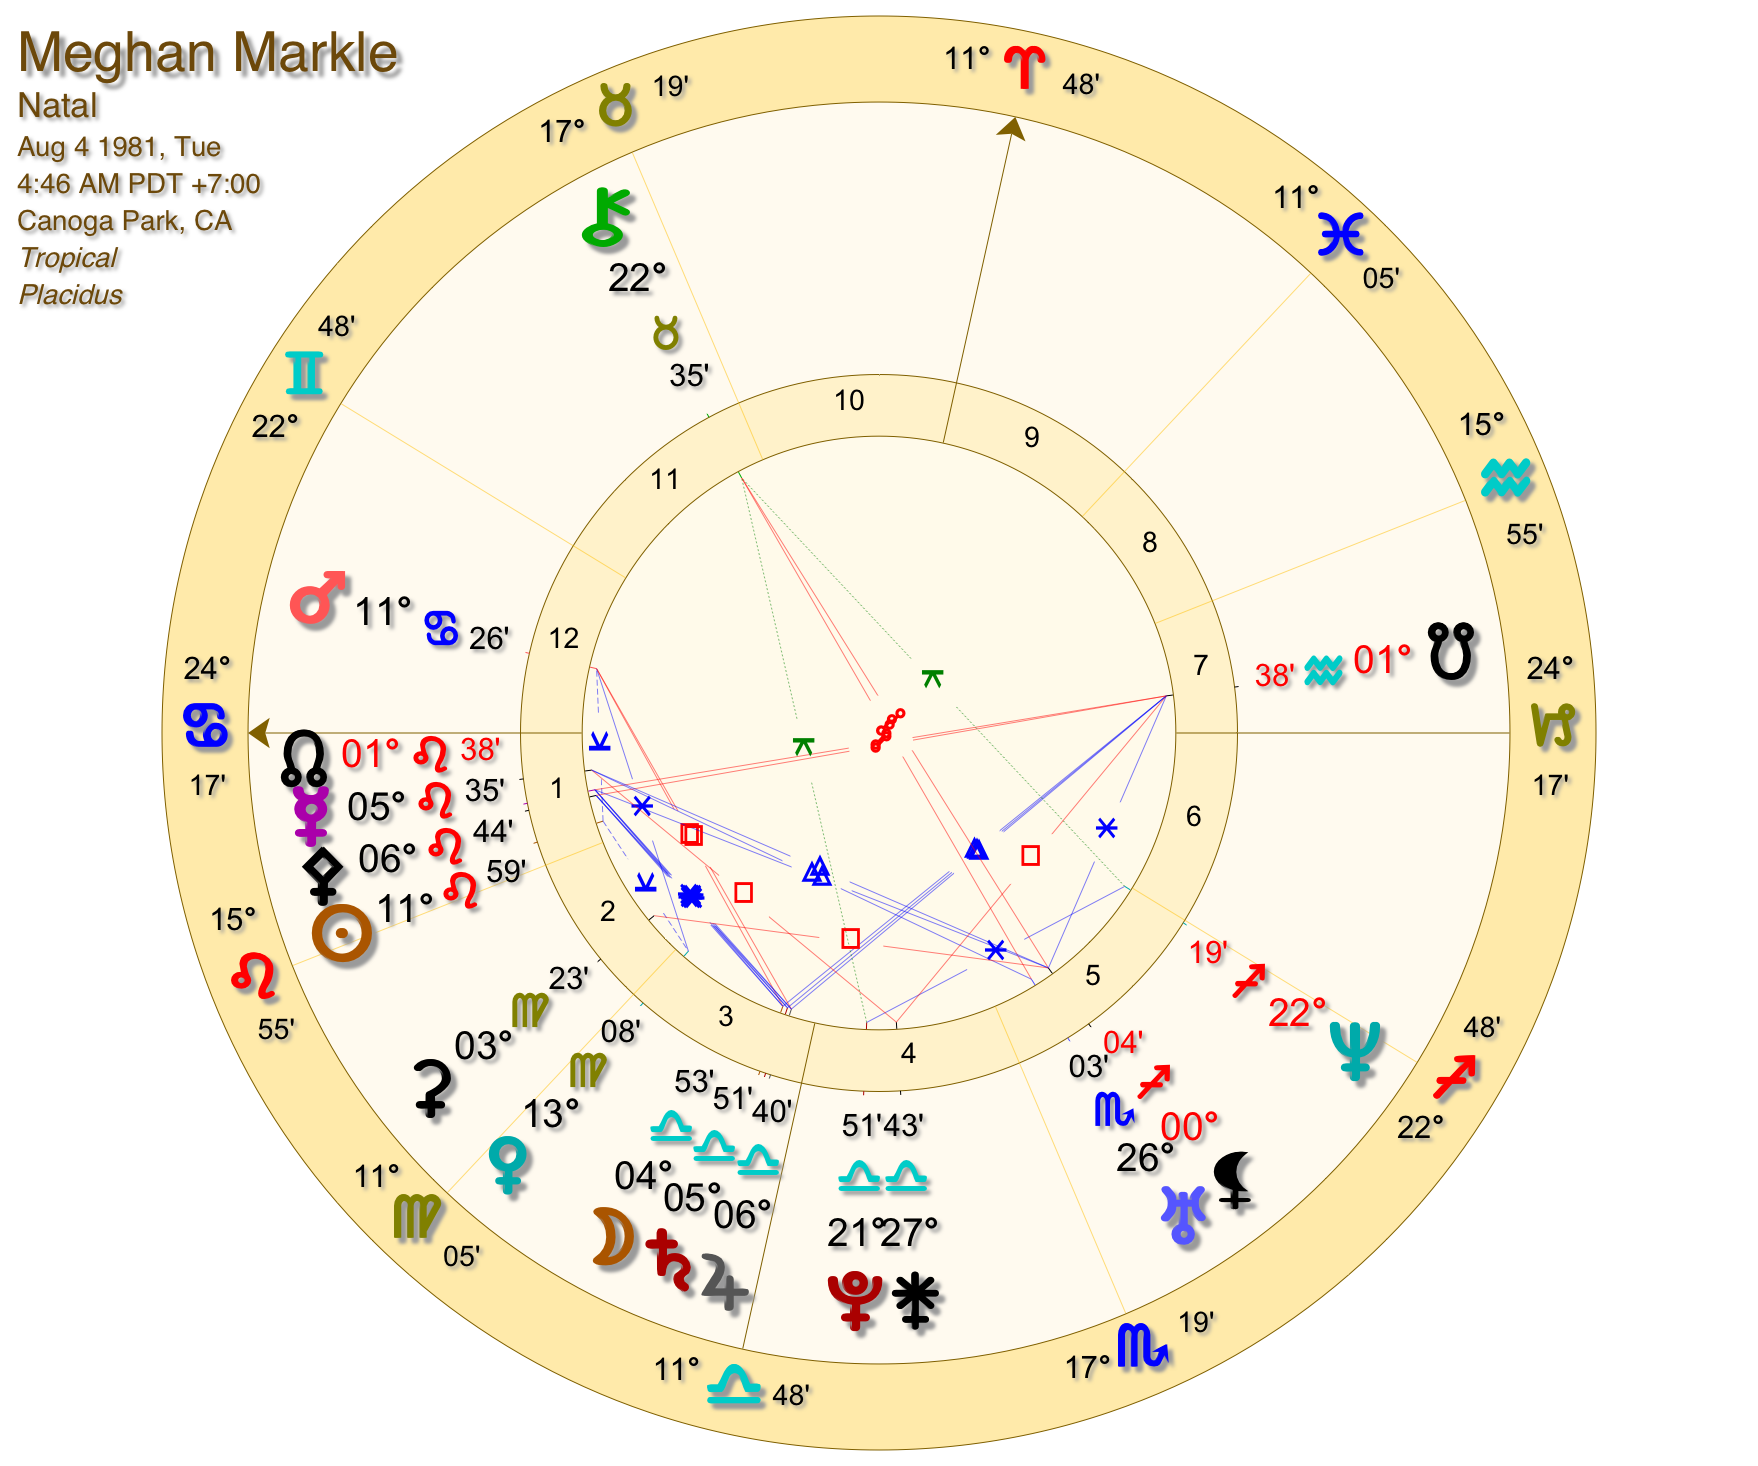 a37f1c28b The astrology of Meghan Markle - Astrology readings and writings by ...